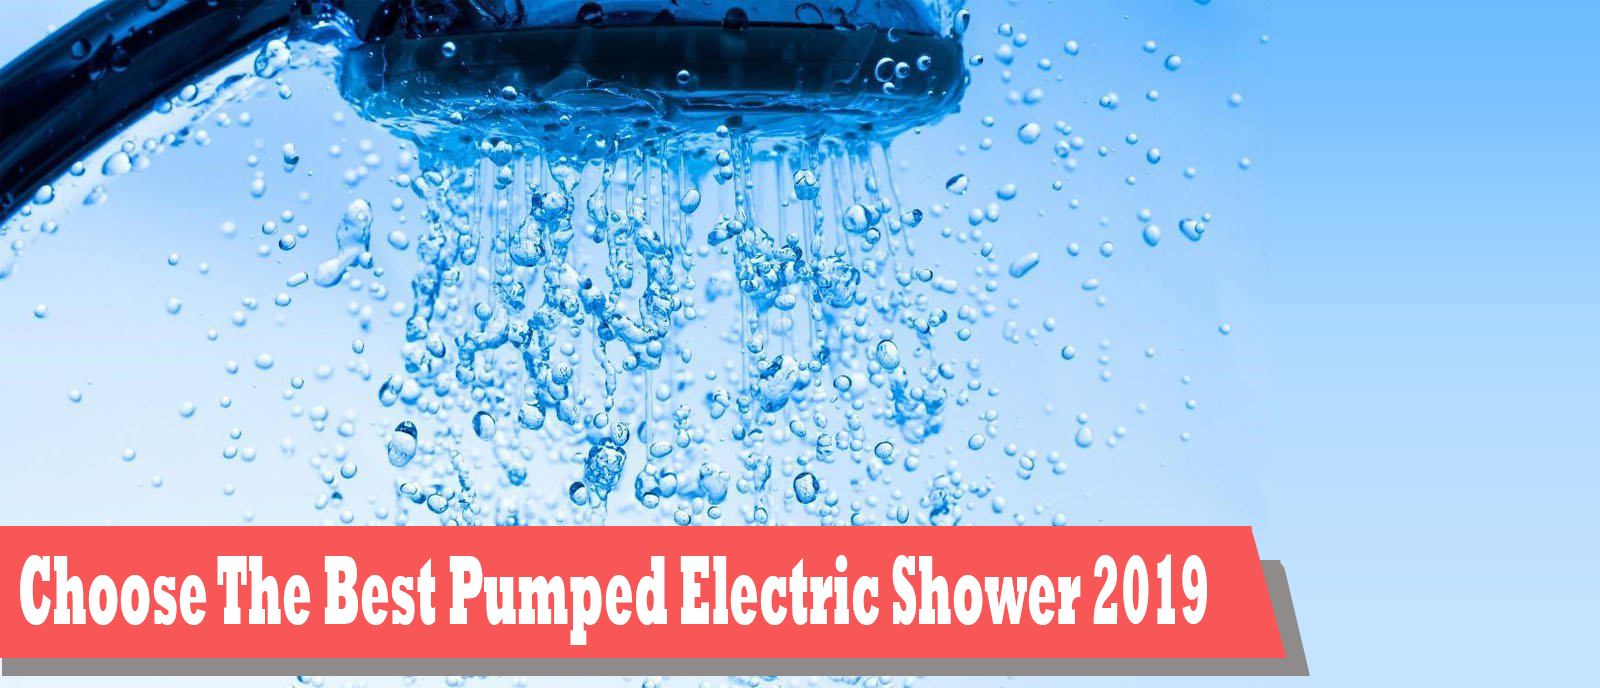 Pumped Electric Shower